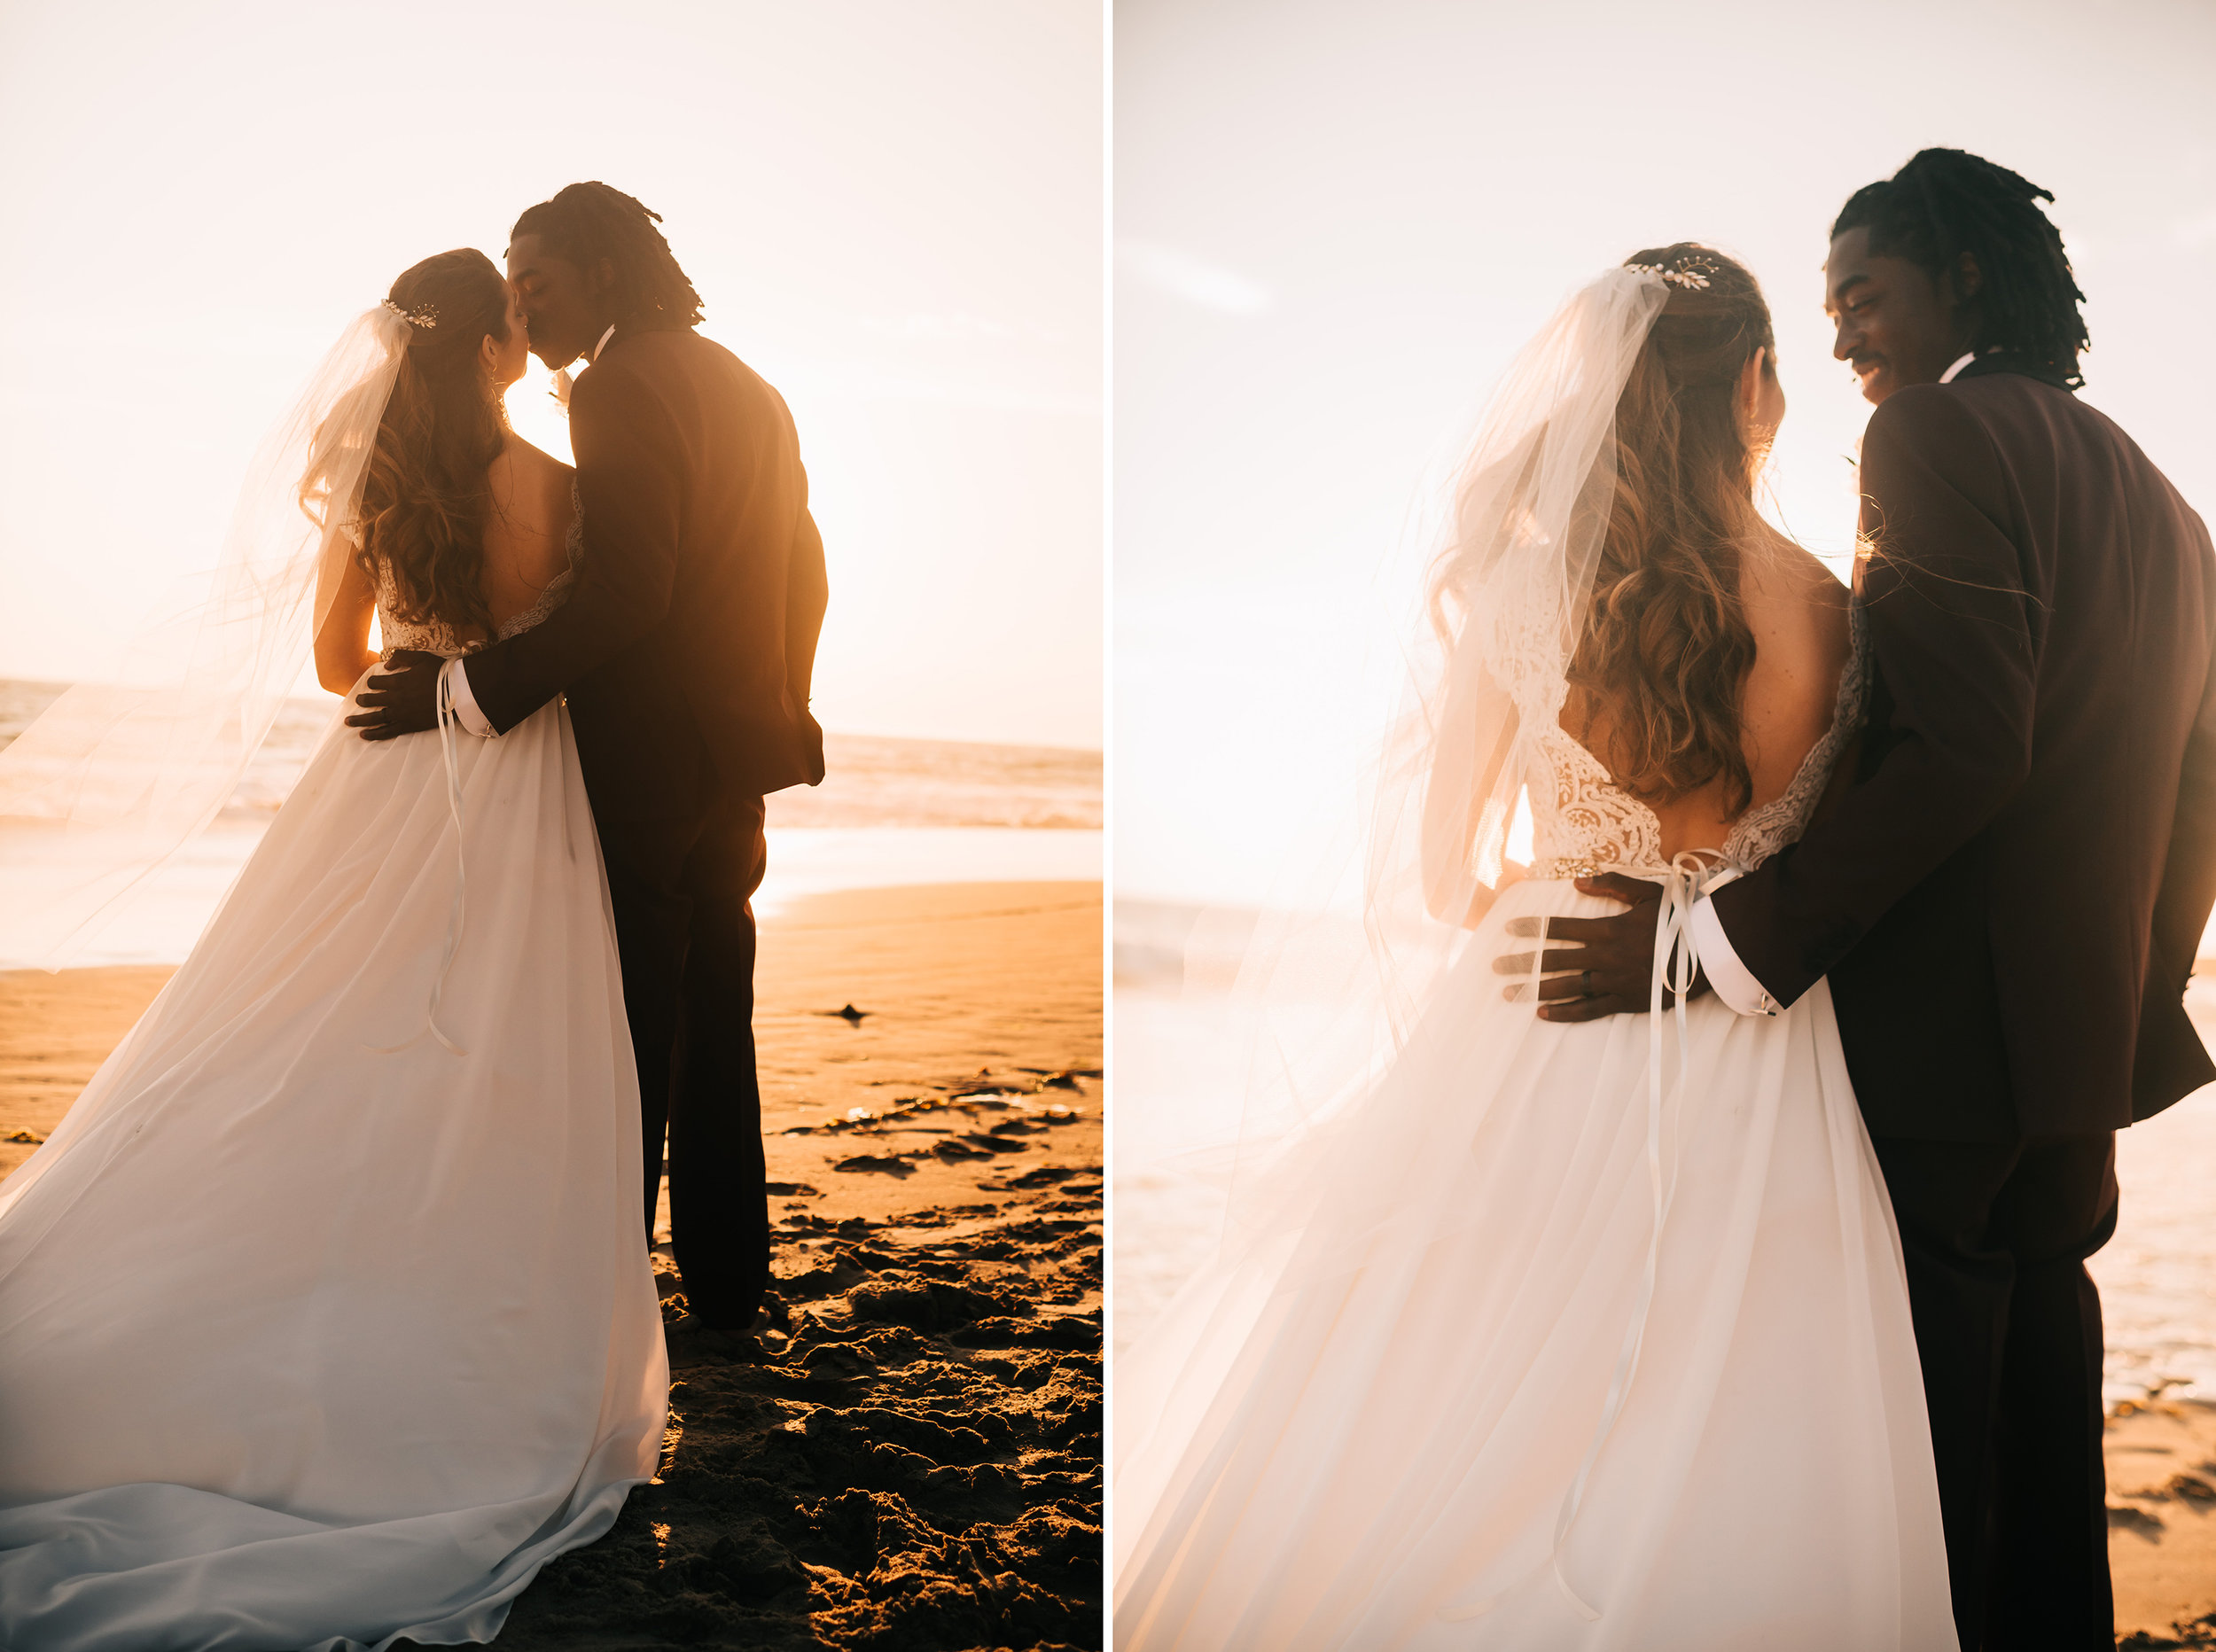 southern california laguna beach salt creek beach los angeles socal boho bay area akland san francisco engagement wedding nontraditional fun creative eclectic photographer magic-927.jpg